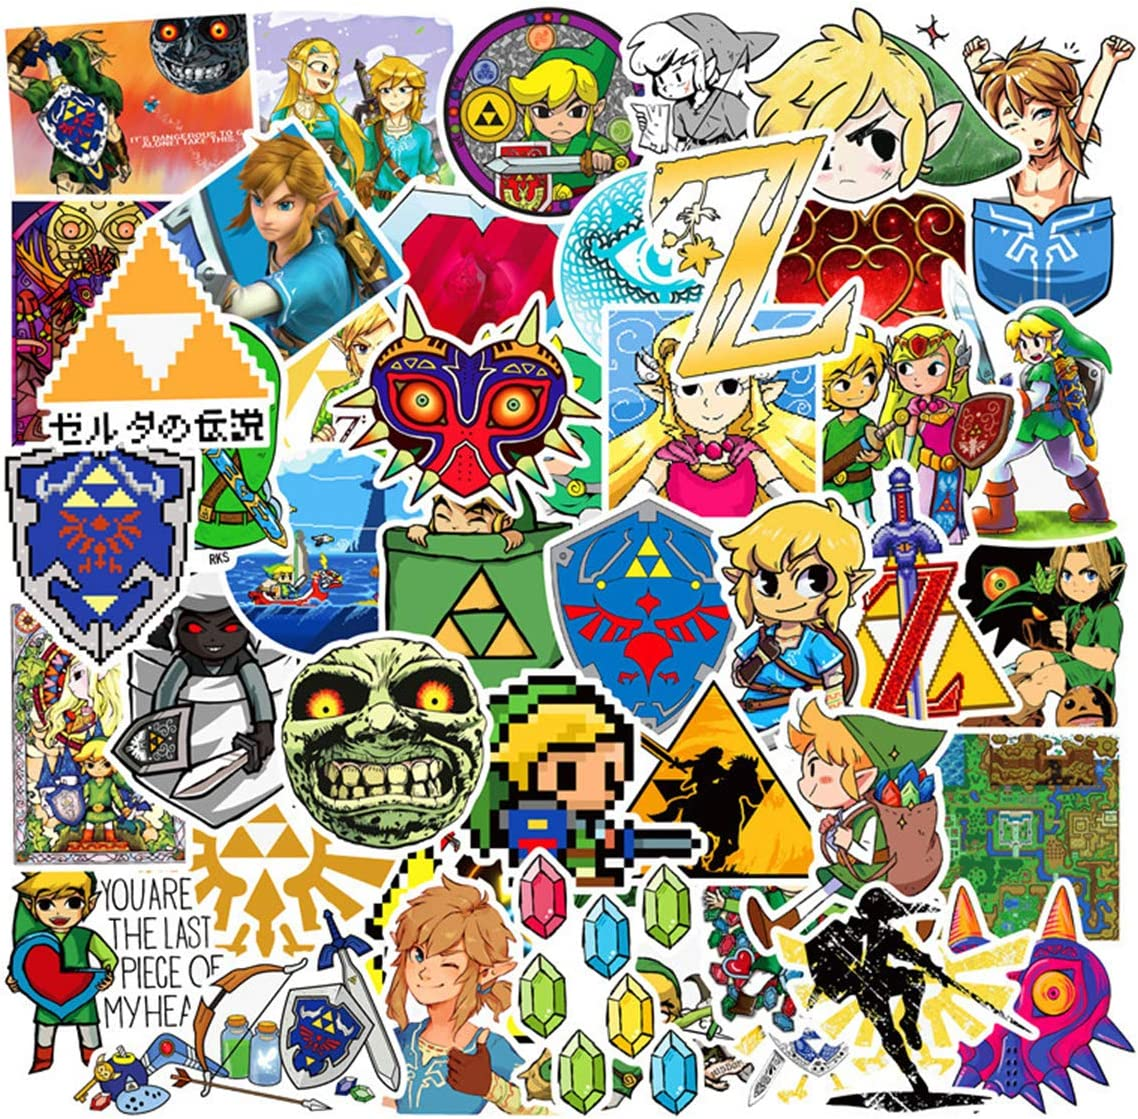 Cool and Popular Game Stickers(47PCS) The Legend of Zelda Stickers for Water Bottle Snowboard Laptop Luggage Car Motorcycle Bicycle Fridge DIY Styling Vinyl Home Waterproof Stickers (Zelda)